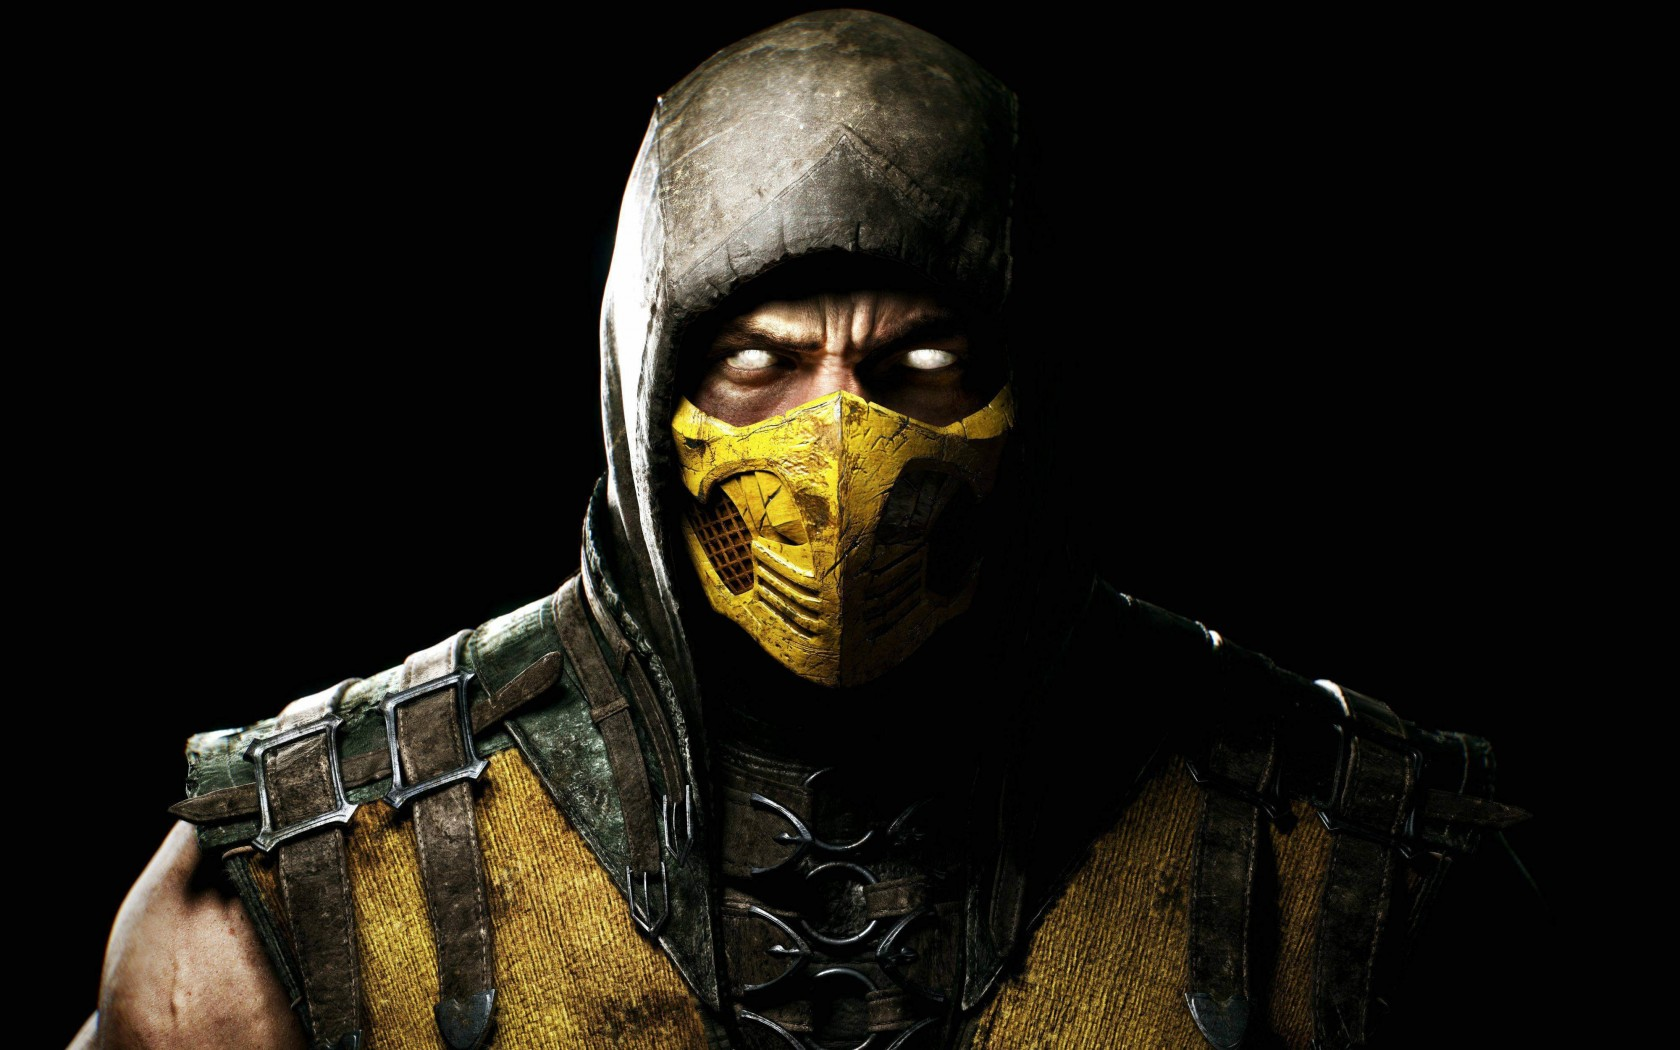 Scorpion Mortal Kombat X Wallpaper for Desktop 1680x1050